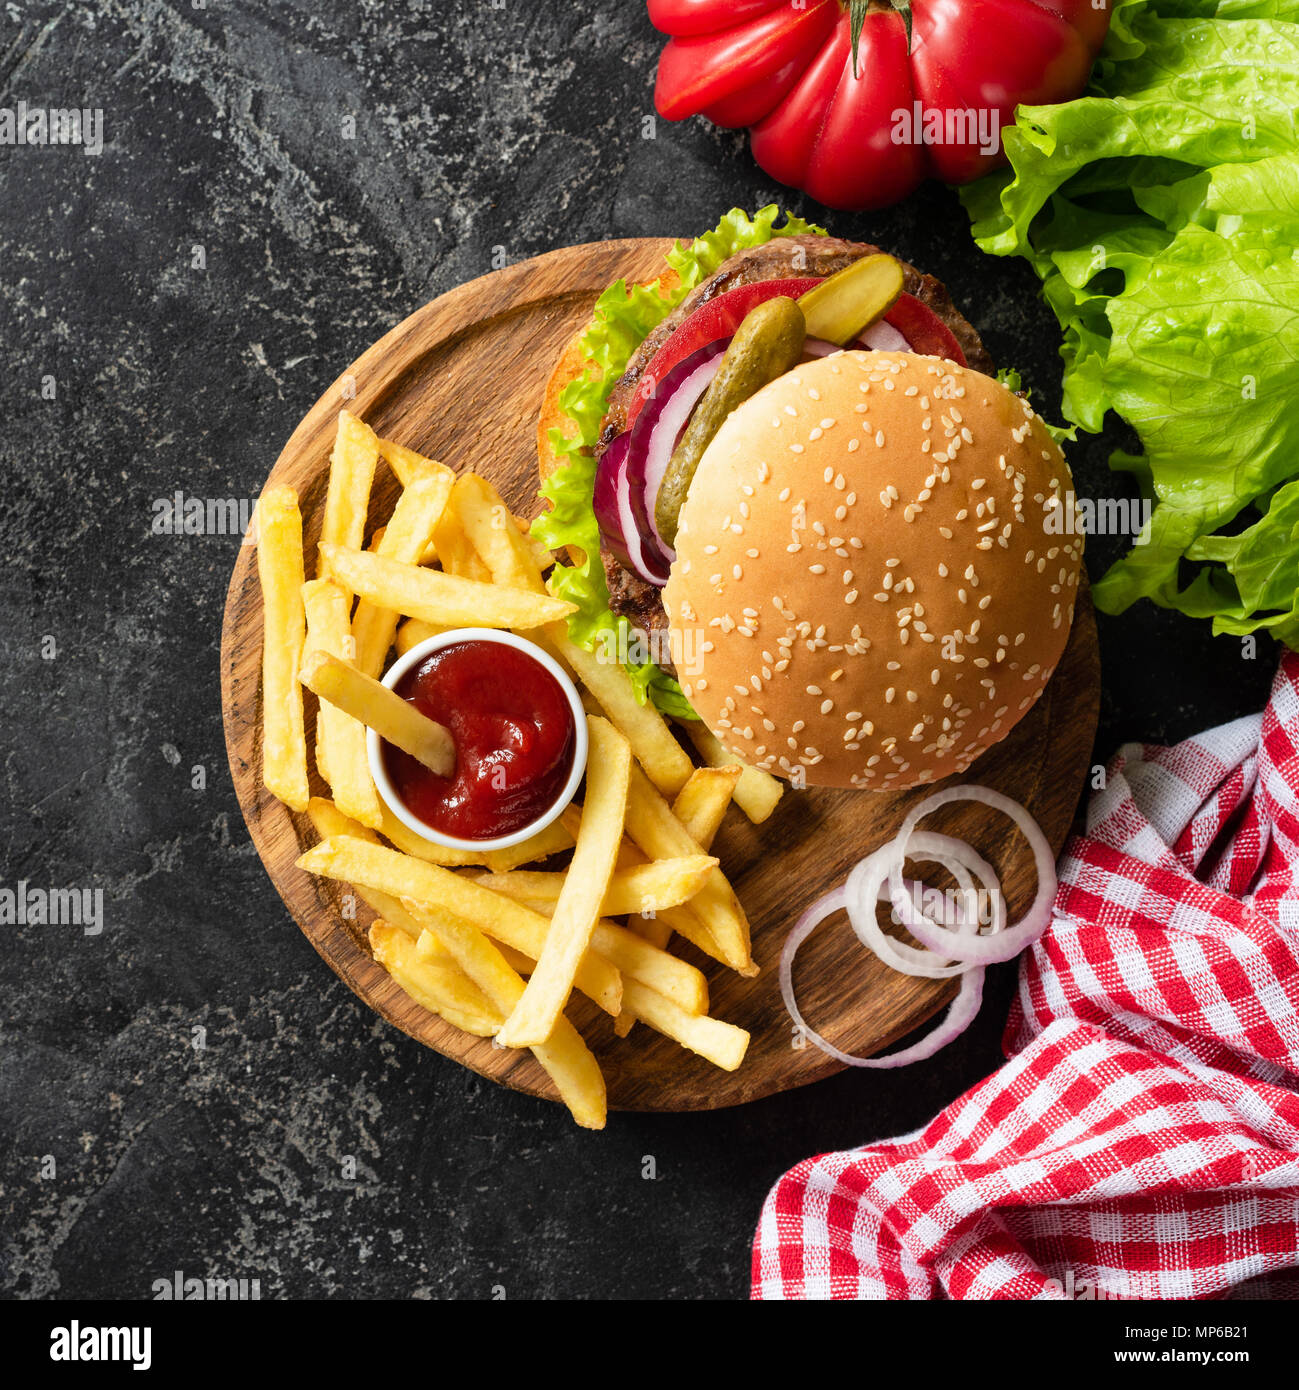 Tasty burger with beef, french fries and ketchup on dark background. Burger top view. Fast food fries and homemade cheeseburger. Square crop - Stock Image